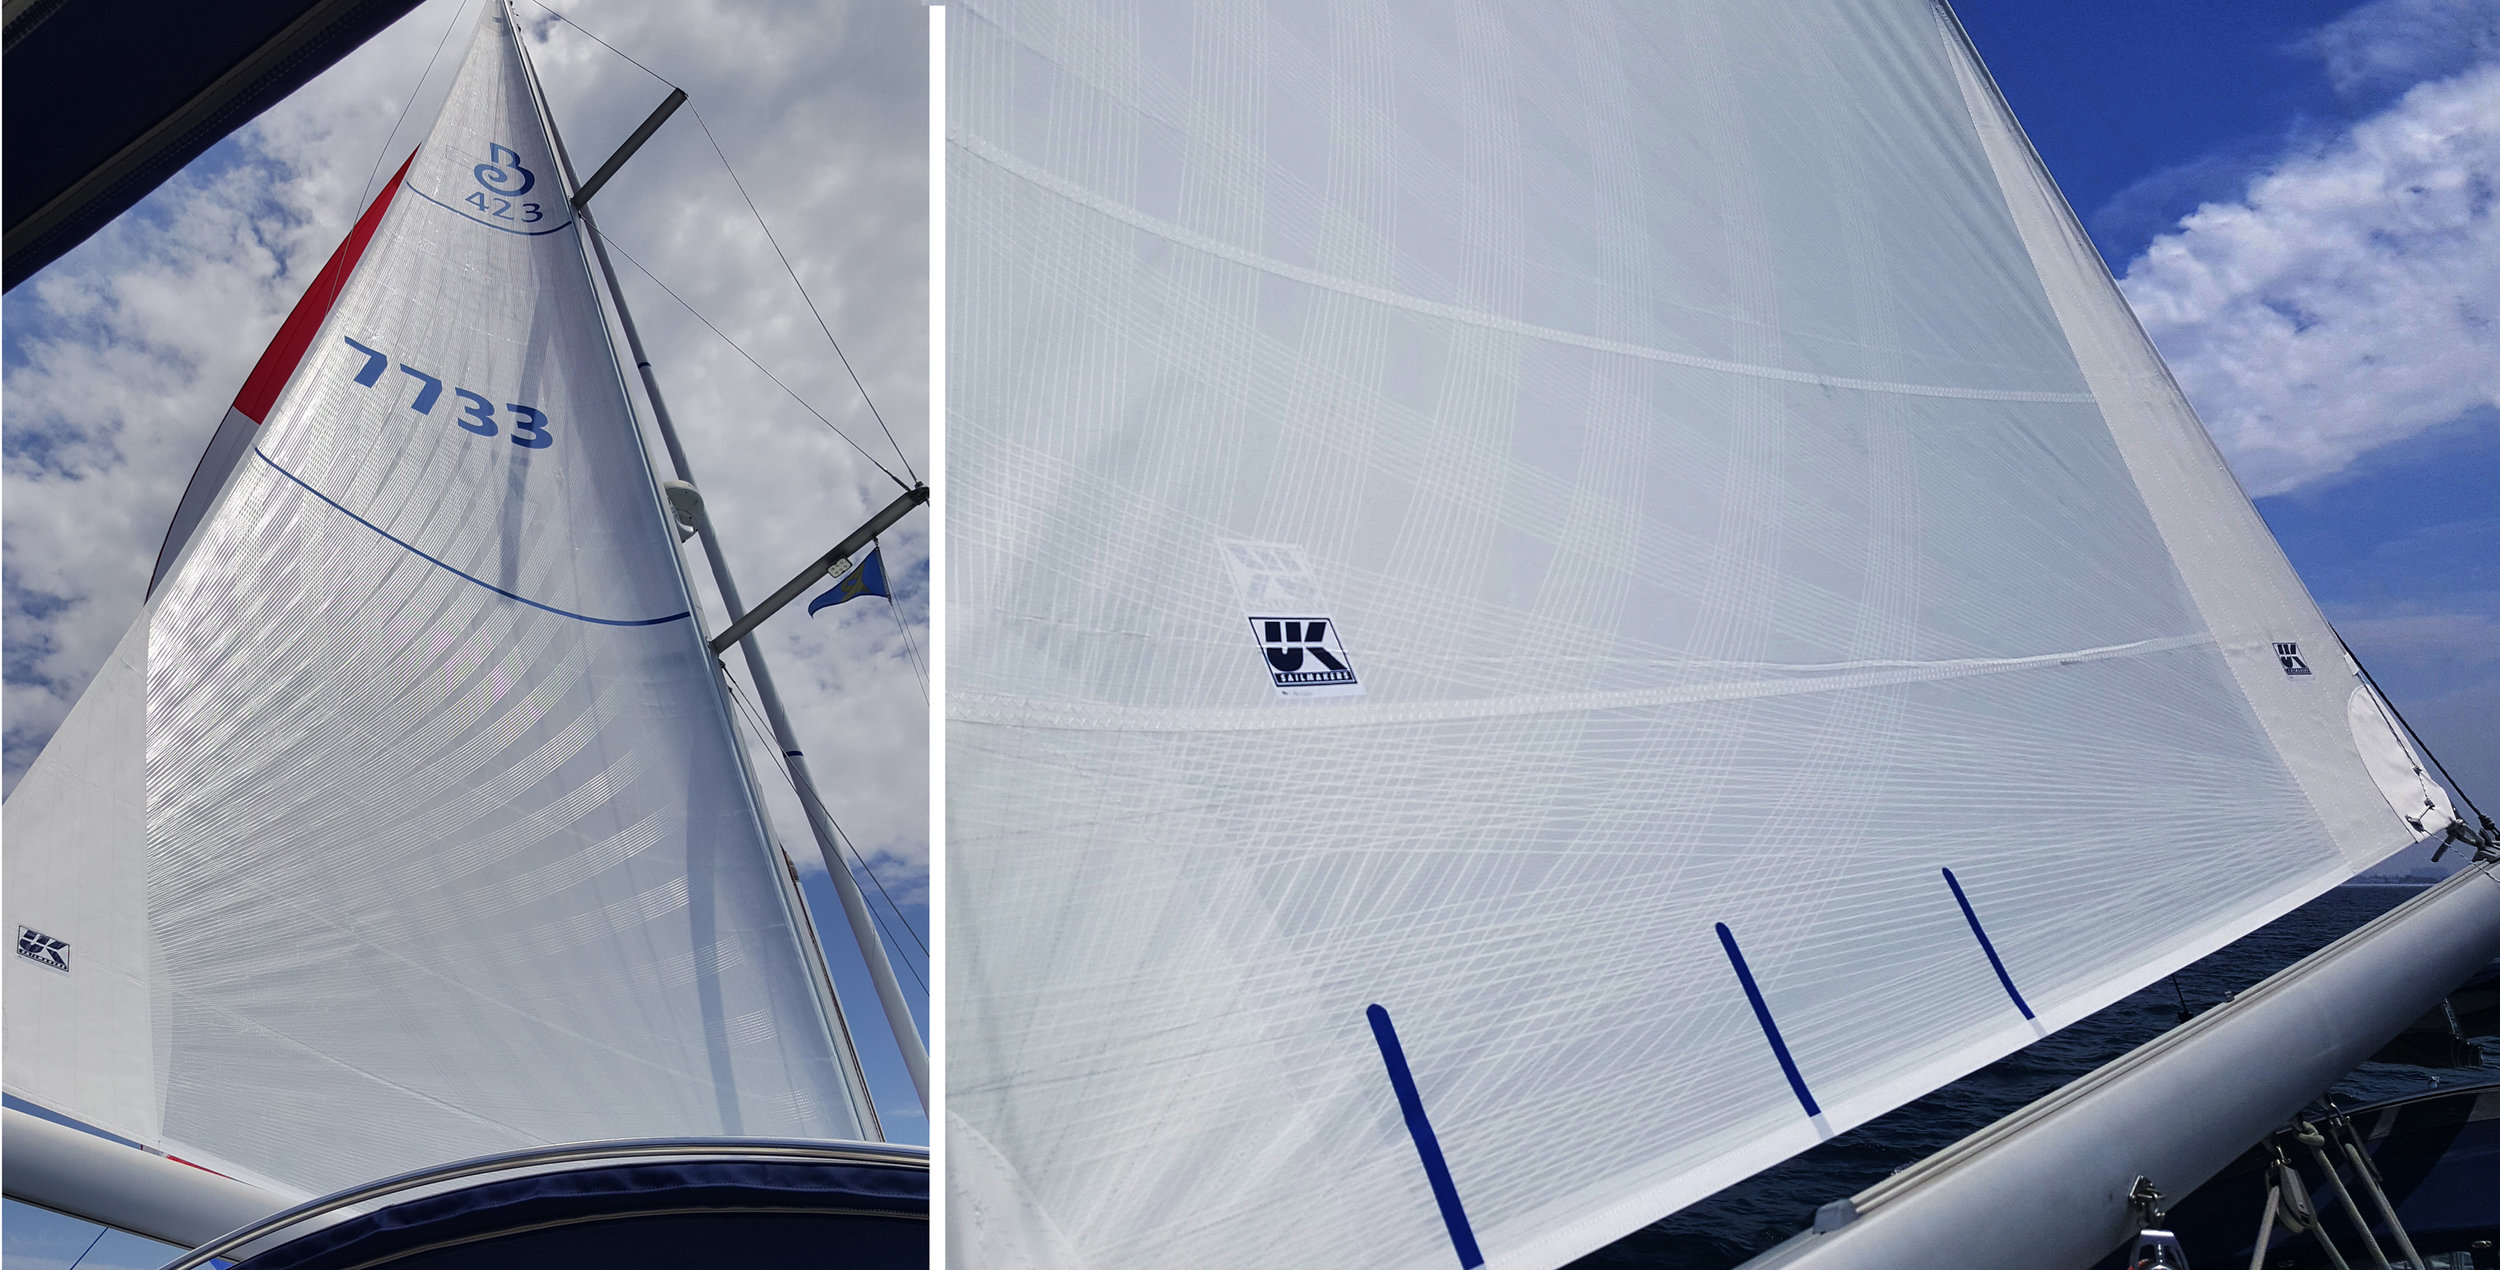 For cruising sailors looking for durability and performance, nothing beats UK Sailmakers' X-Drive sails made with hundreds of high strength tapes reinforcing nearly 100% of the sail's surface. We offer tapes made with S-Glass yarns or Endumax filaments that make high performance sails with an all-white appearance.